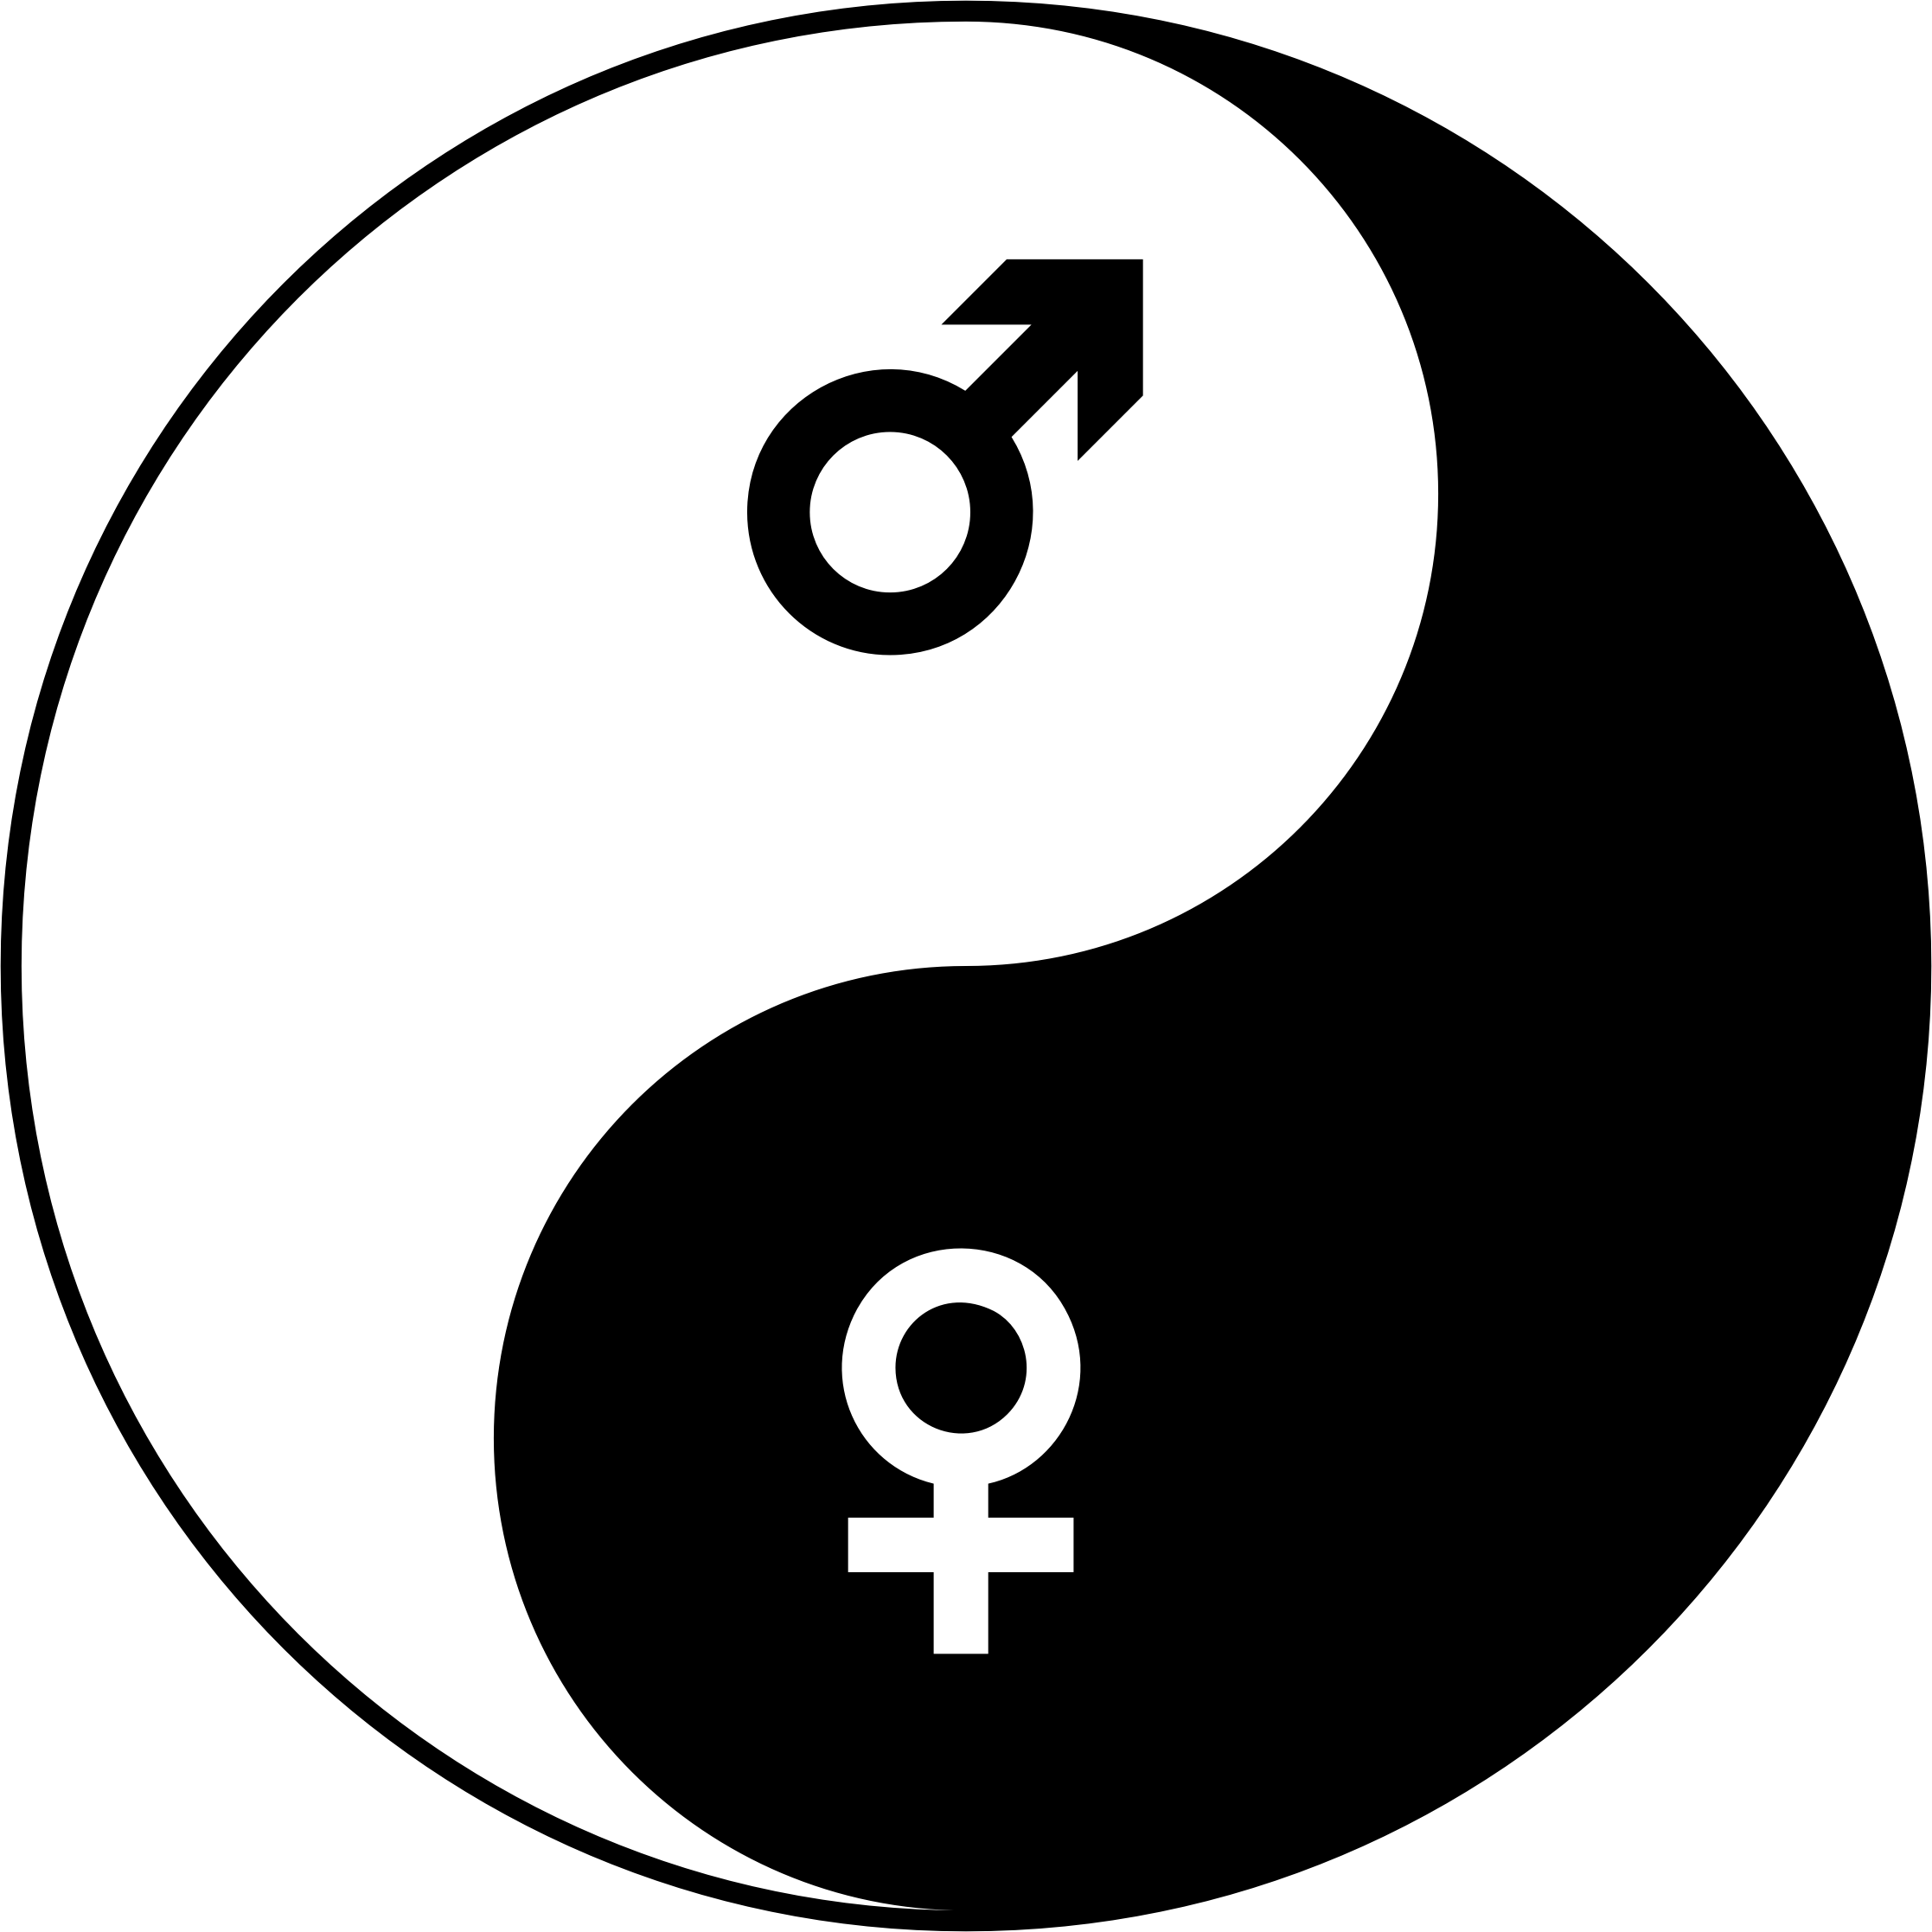 Clipart Female And Male Symbols Yin Yang